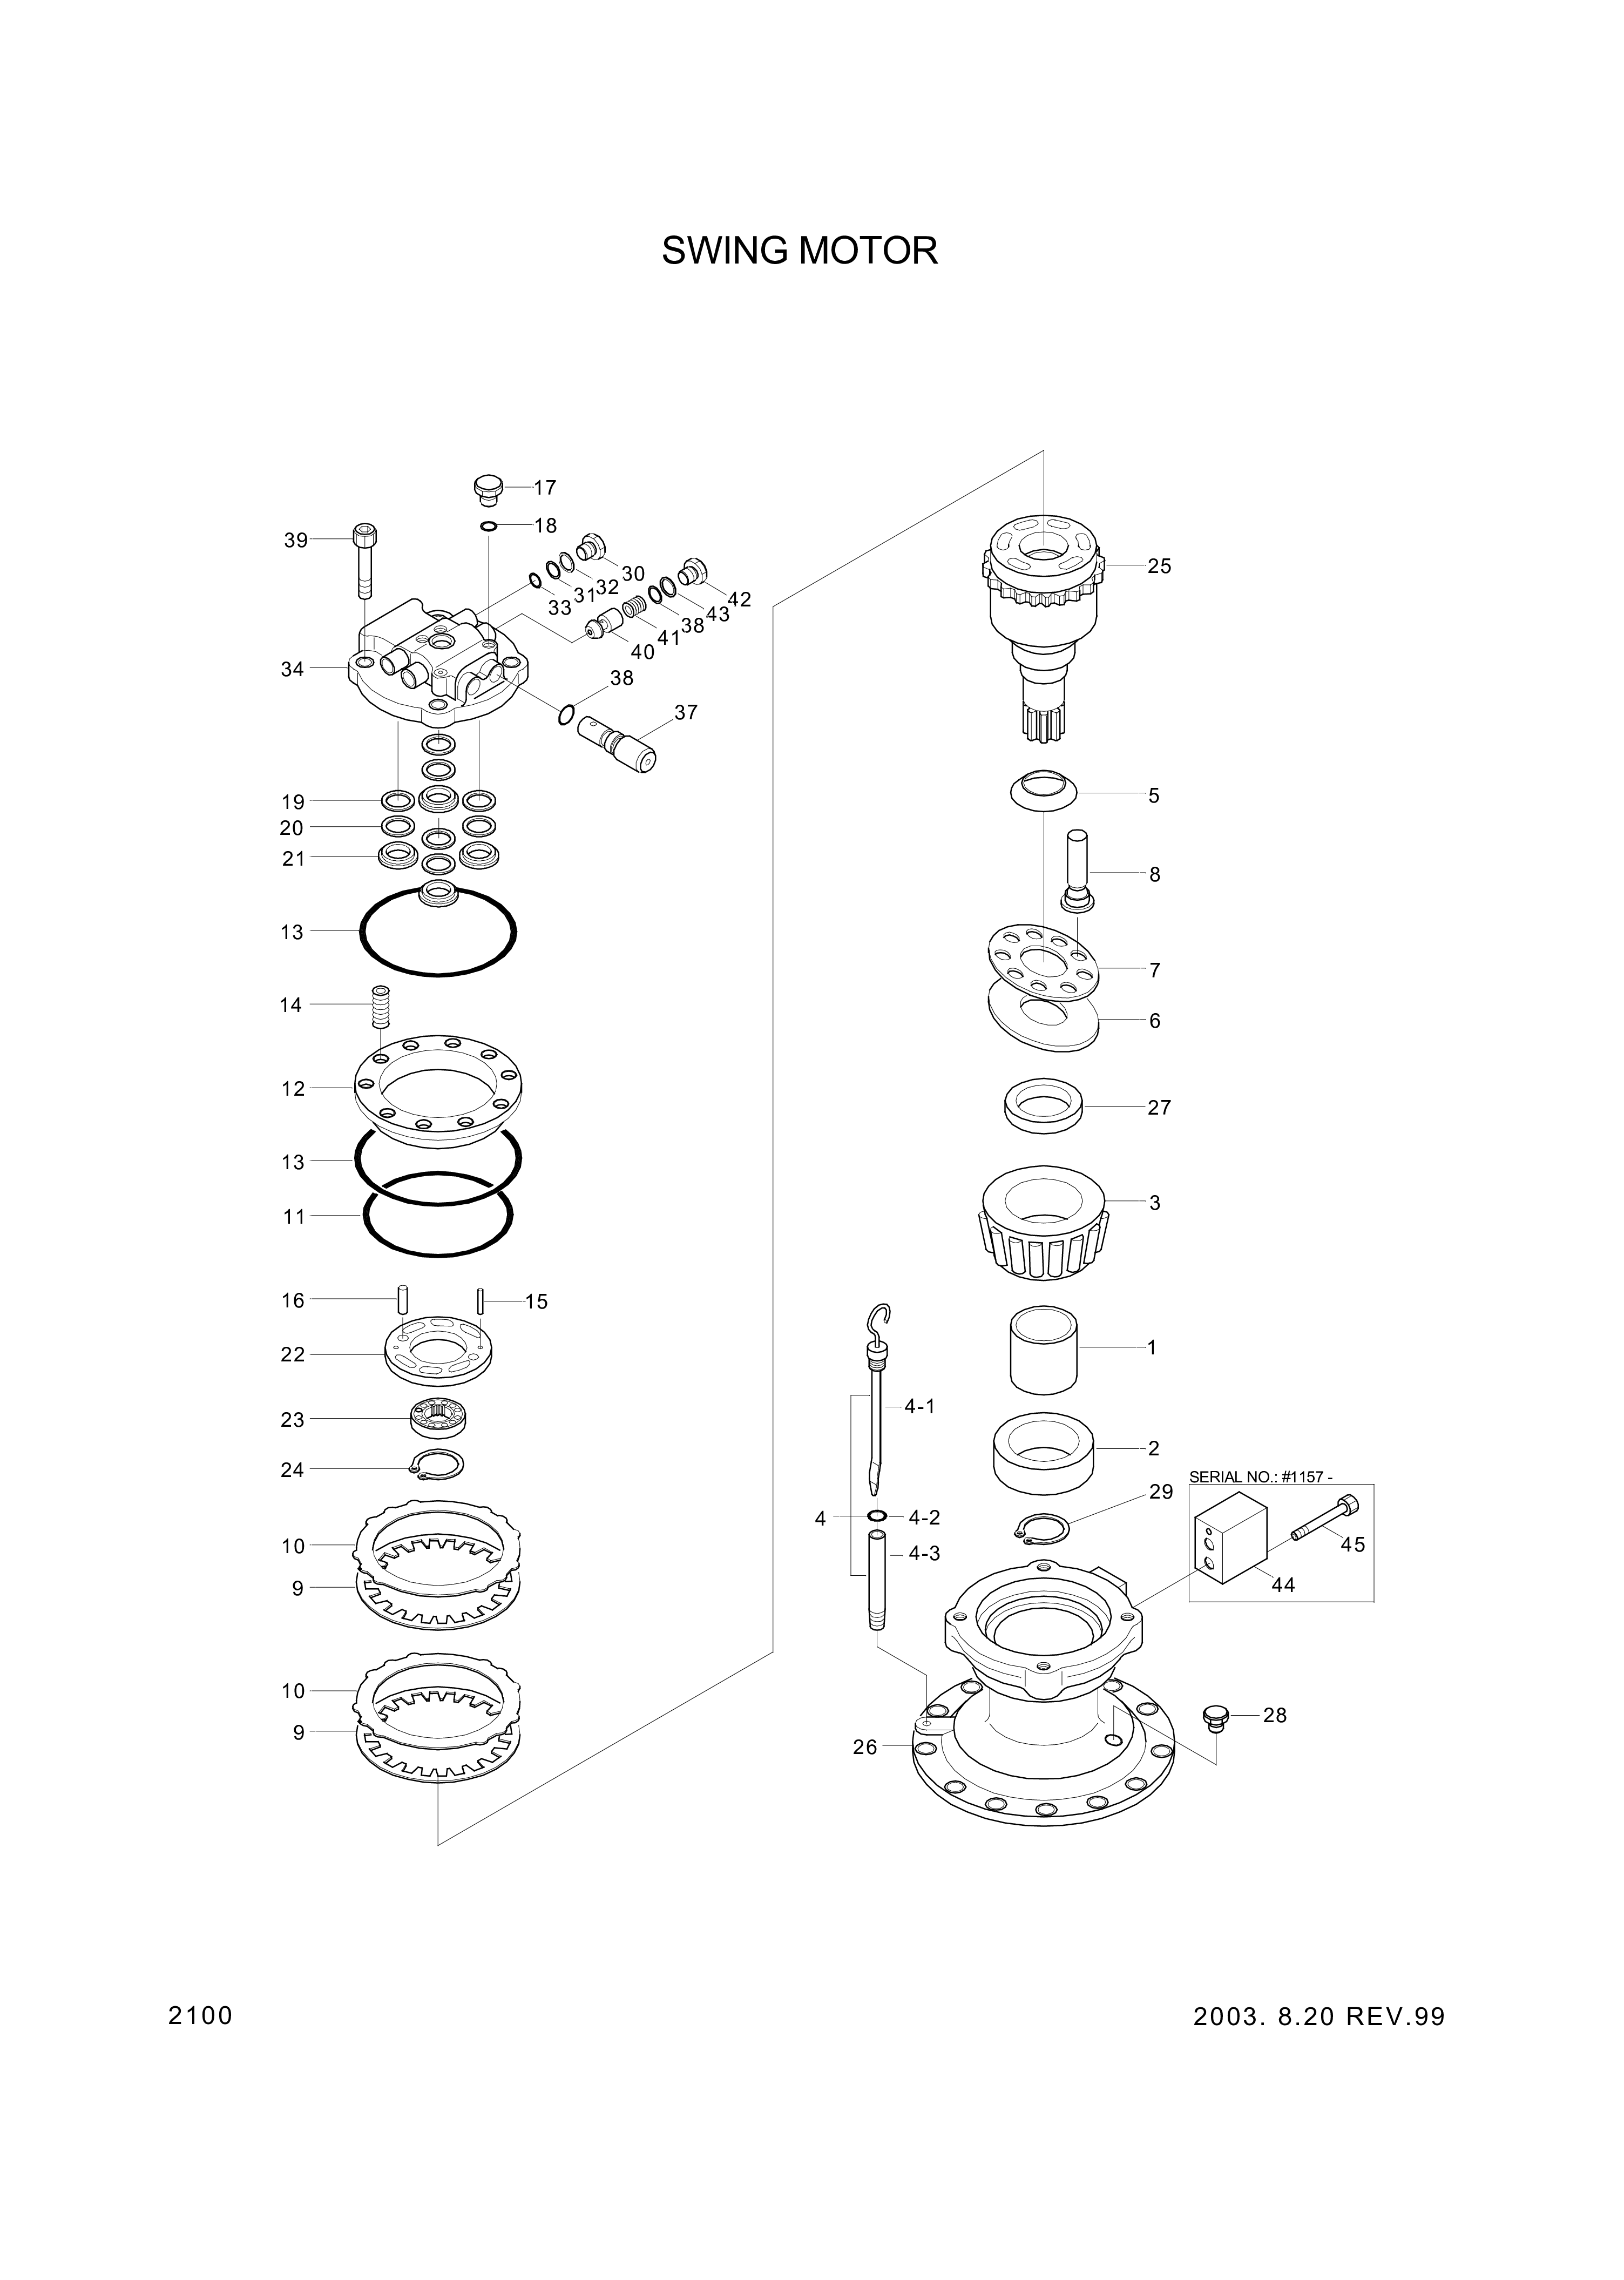 drawing for Hyundai Construction Equipment 3537-293 - RELIEF VALVE ASSY